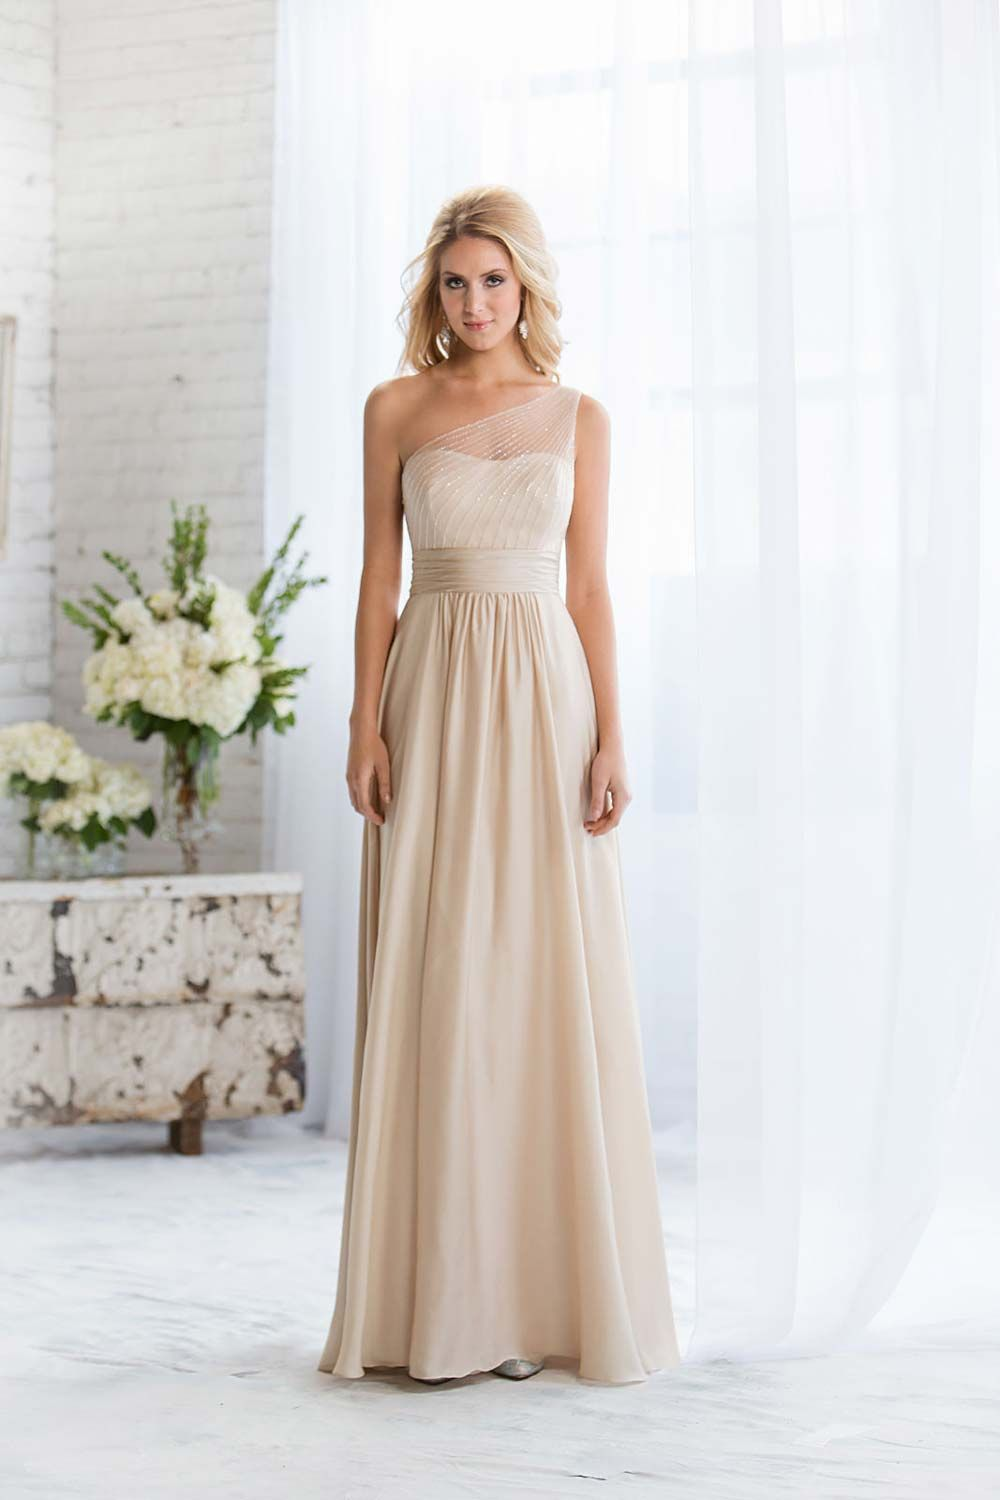 15 champagne bridesmaid dresses that your girls will love 15 champagne bridesmaid dresses that your girls will love ombrellifo Choice Image